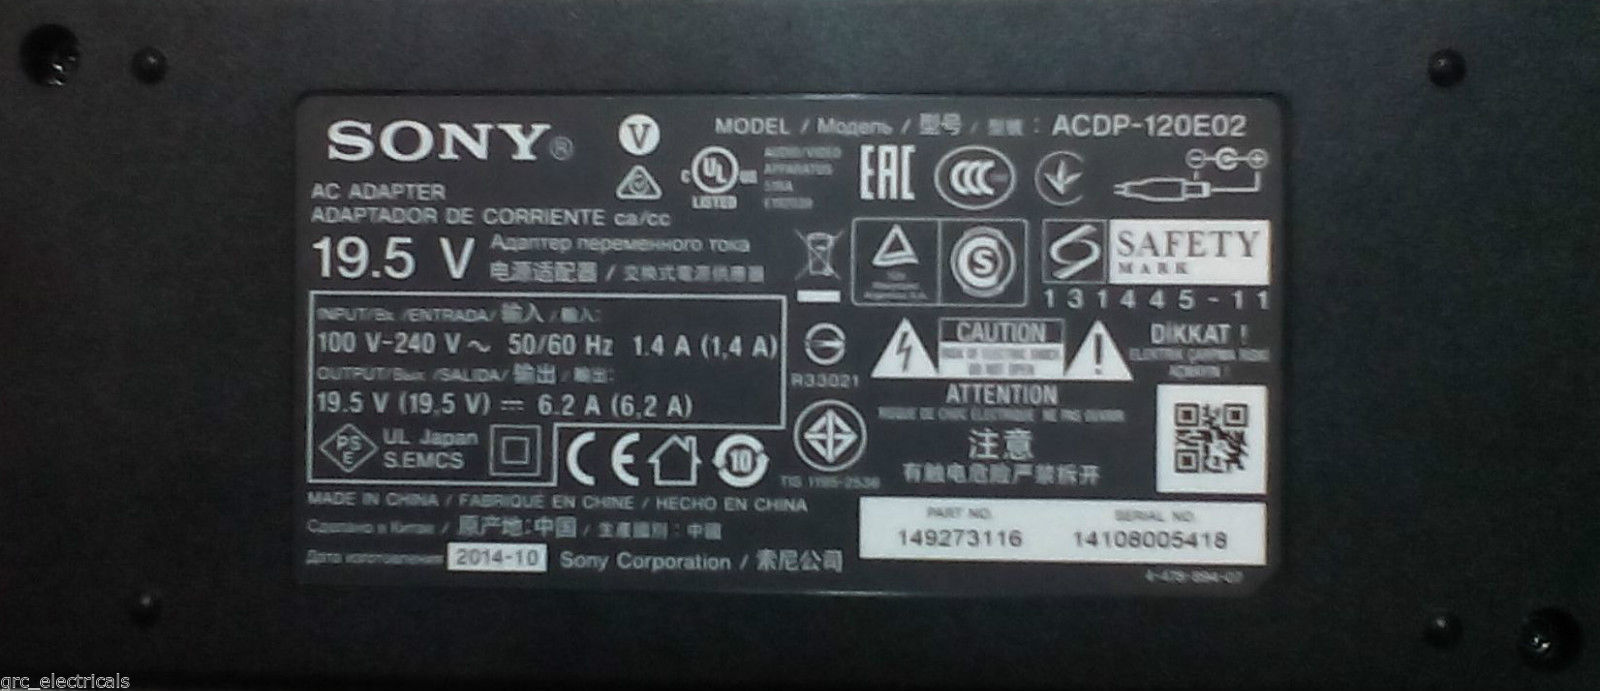 sony tv power cord. sony led tv ac adapter acdp-120n02 19.5v 6.2a power supply kdl- w series sony tv power cord